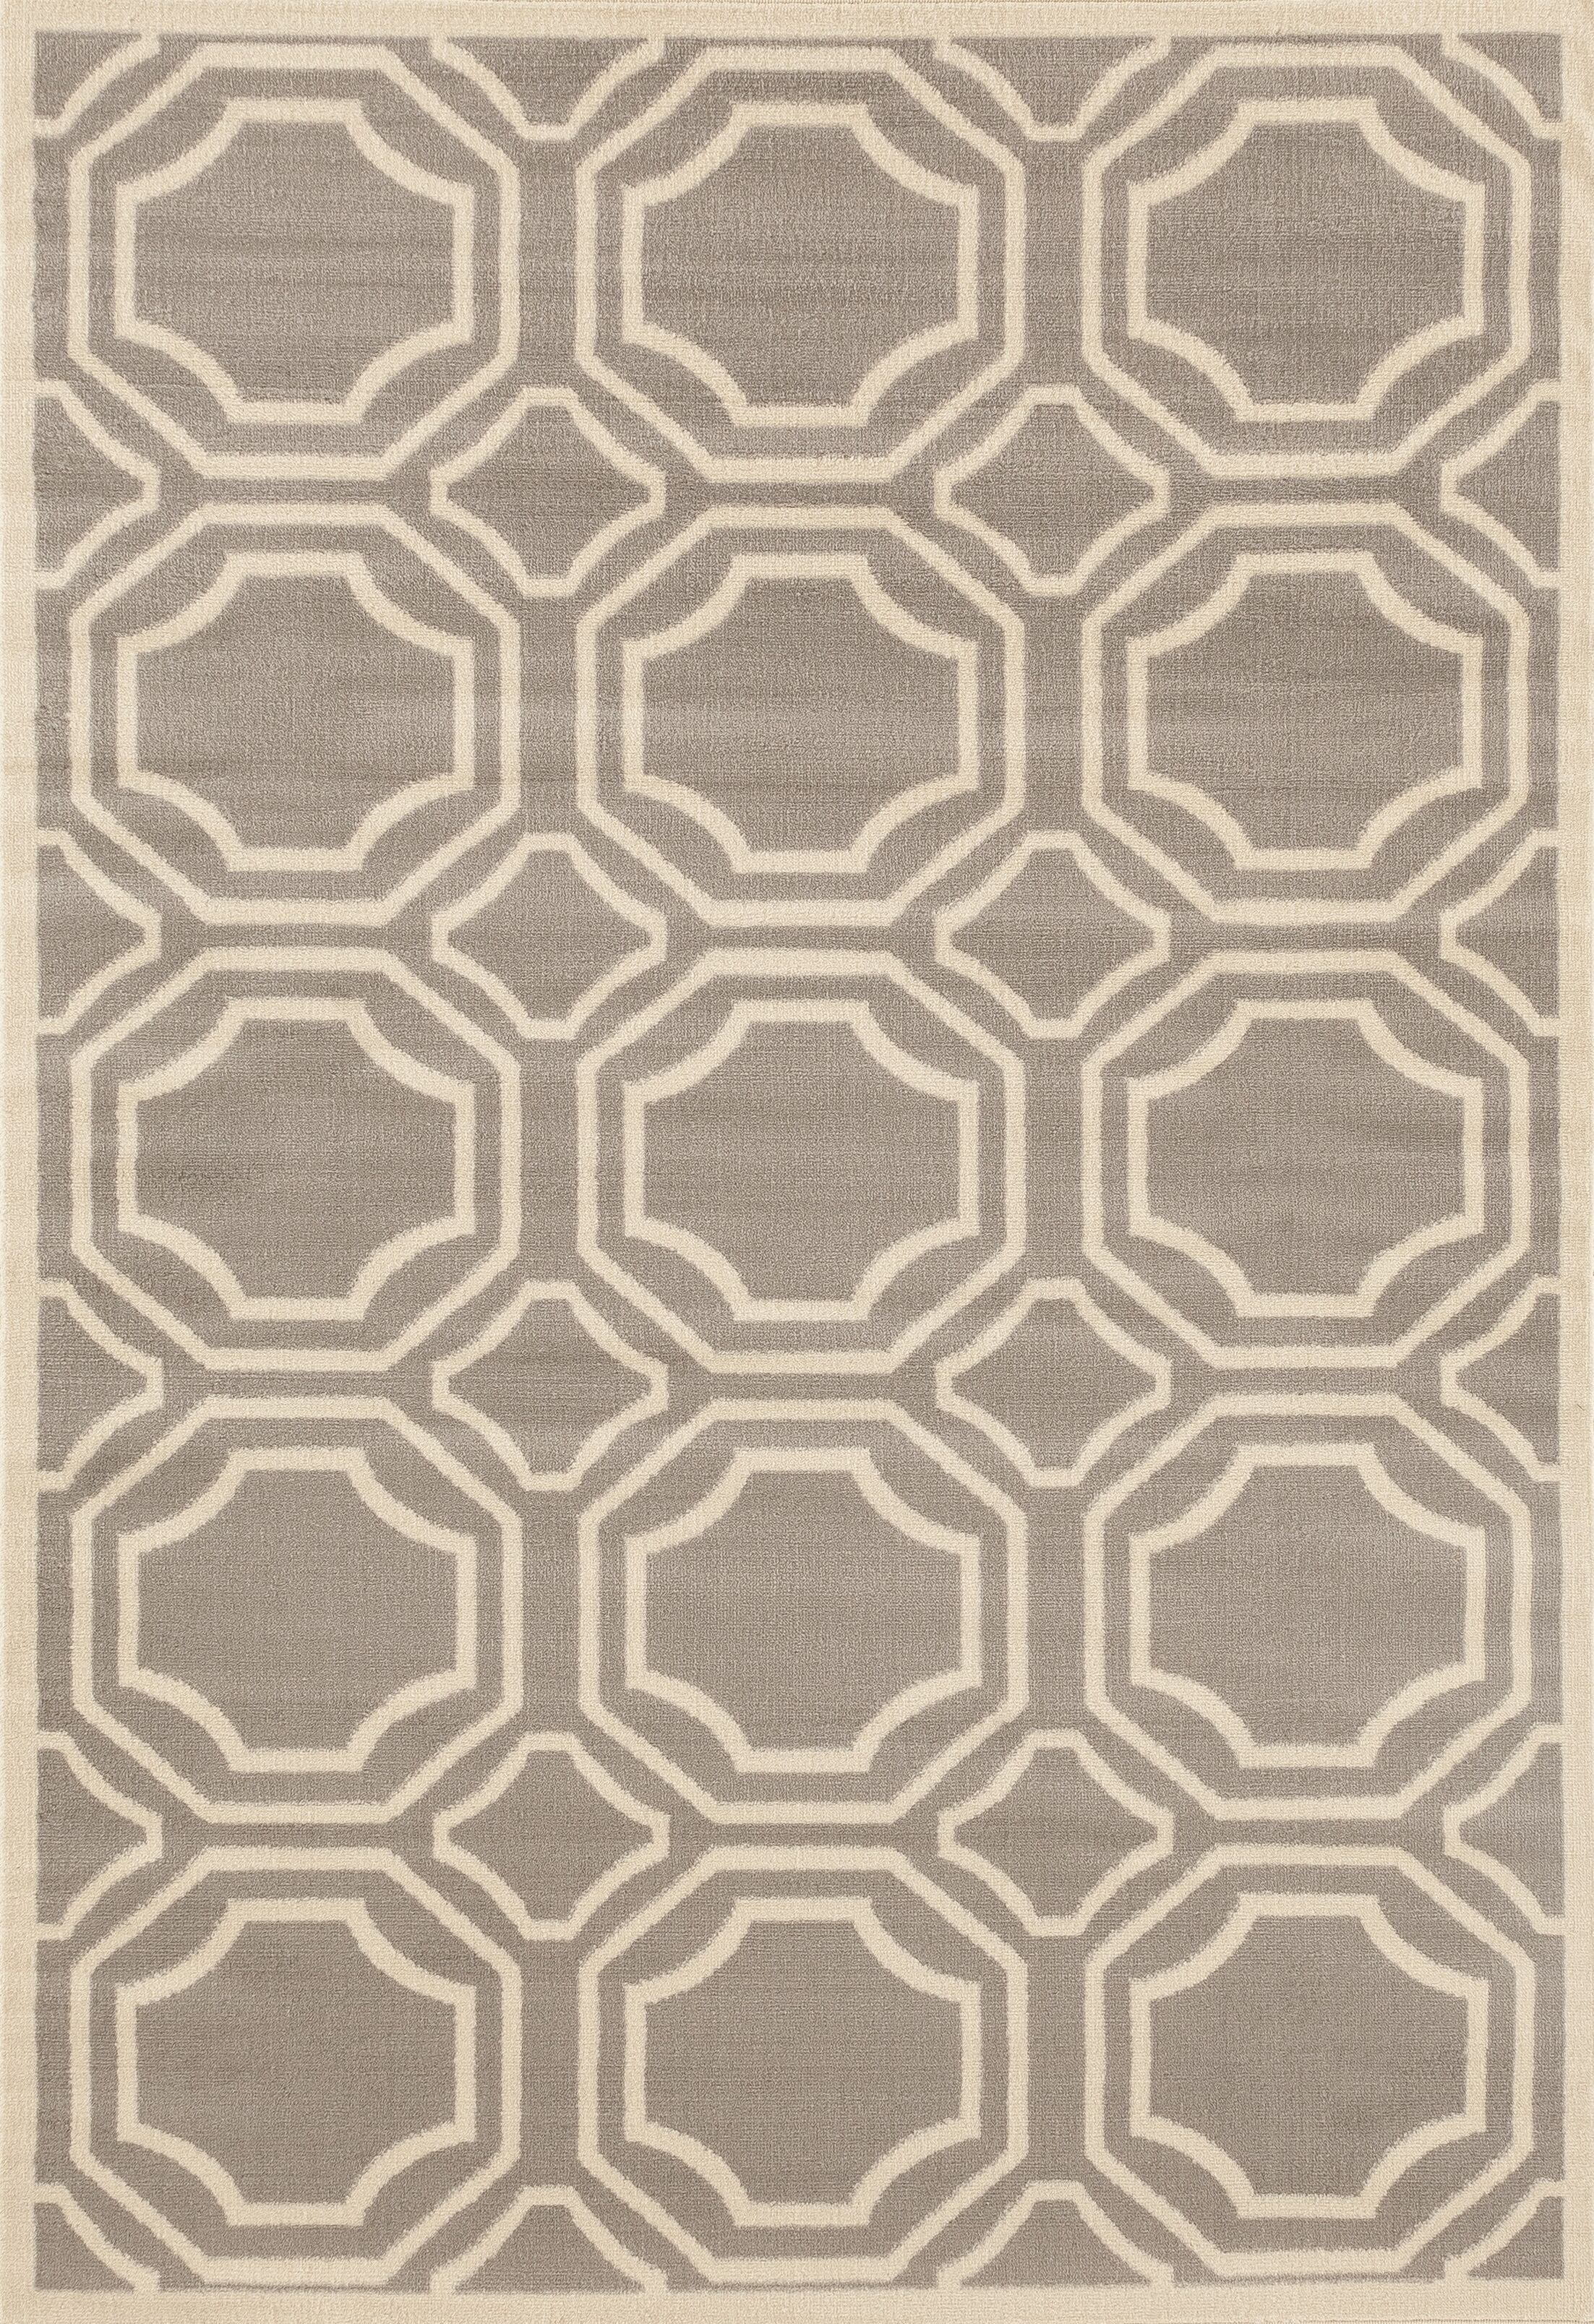 Freeman Gray Area Rug Rug Size: 7'6